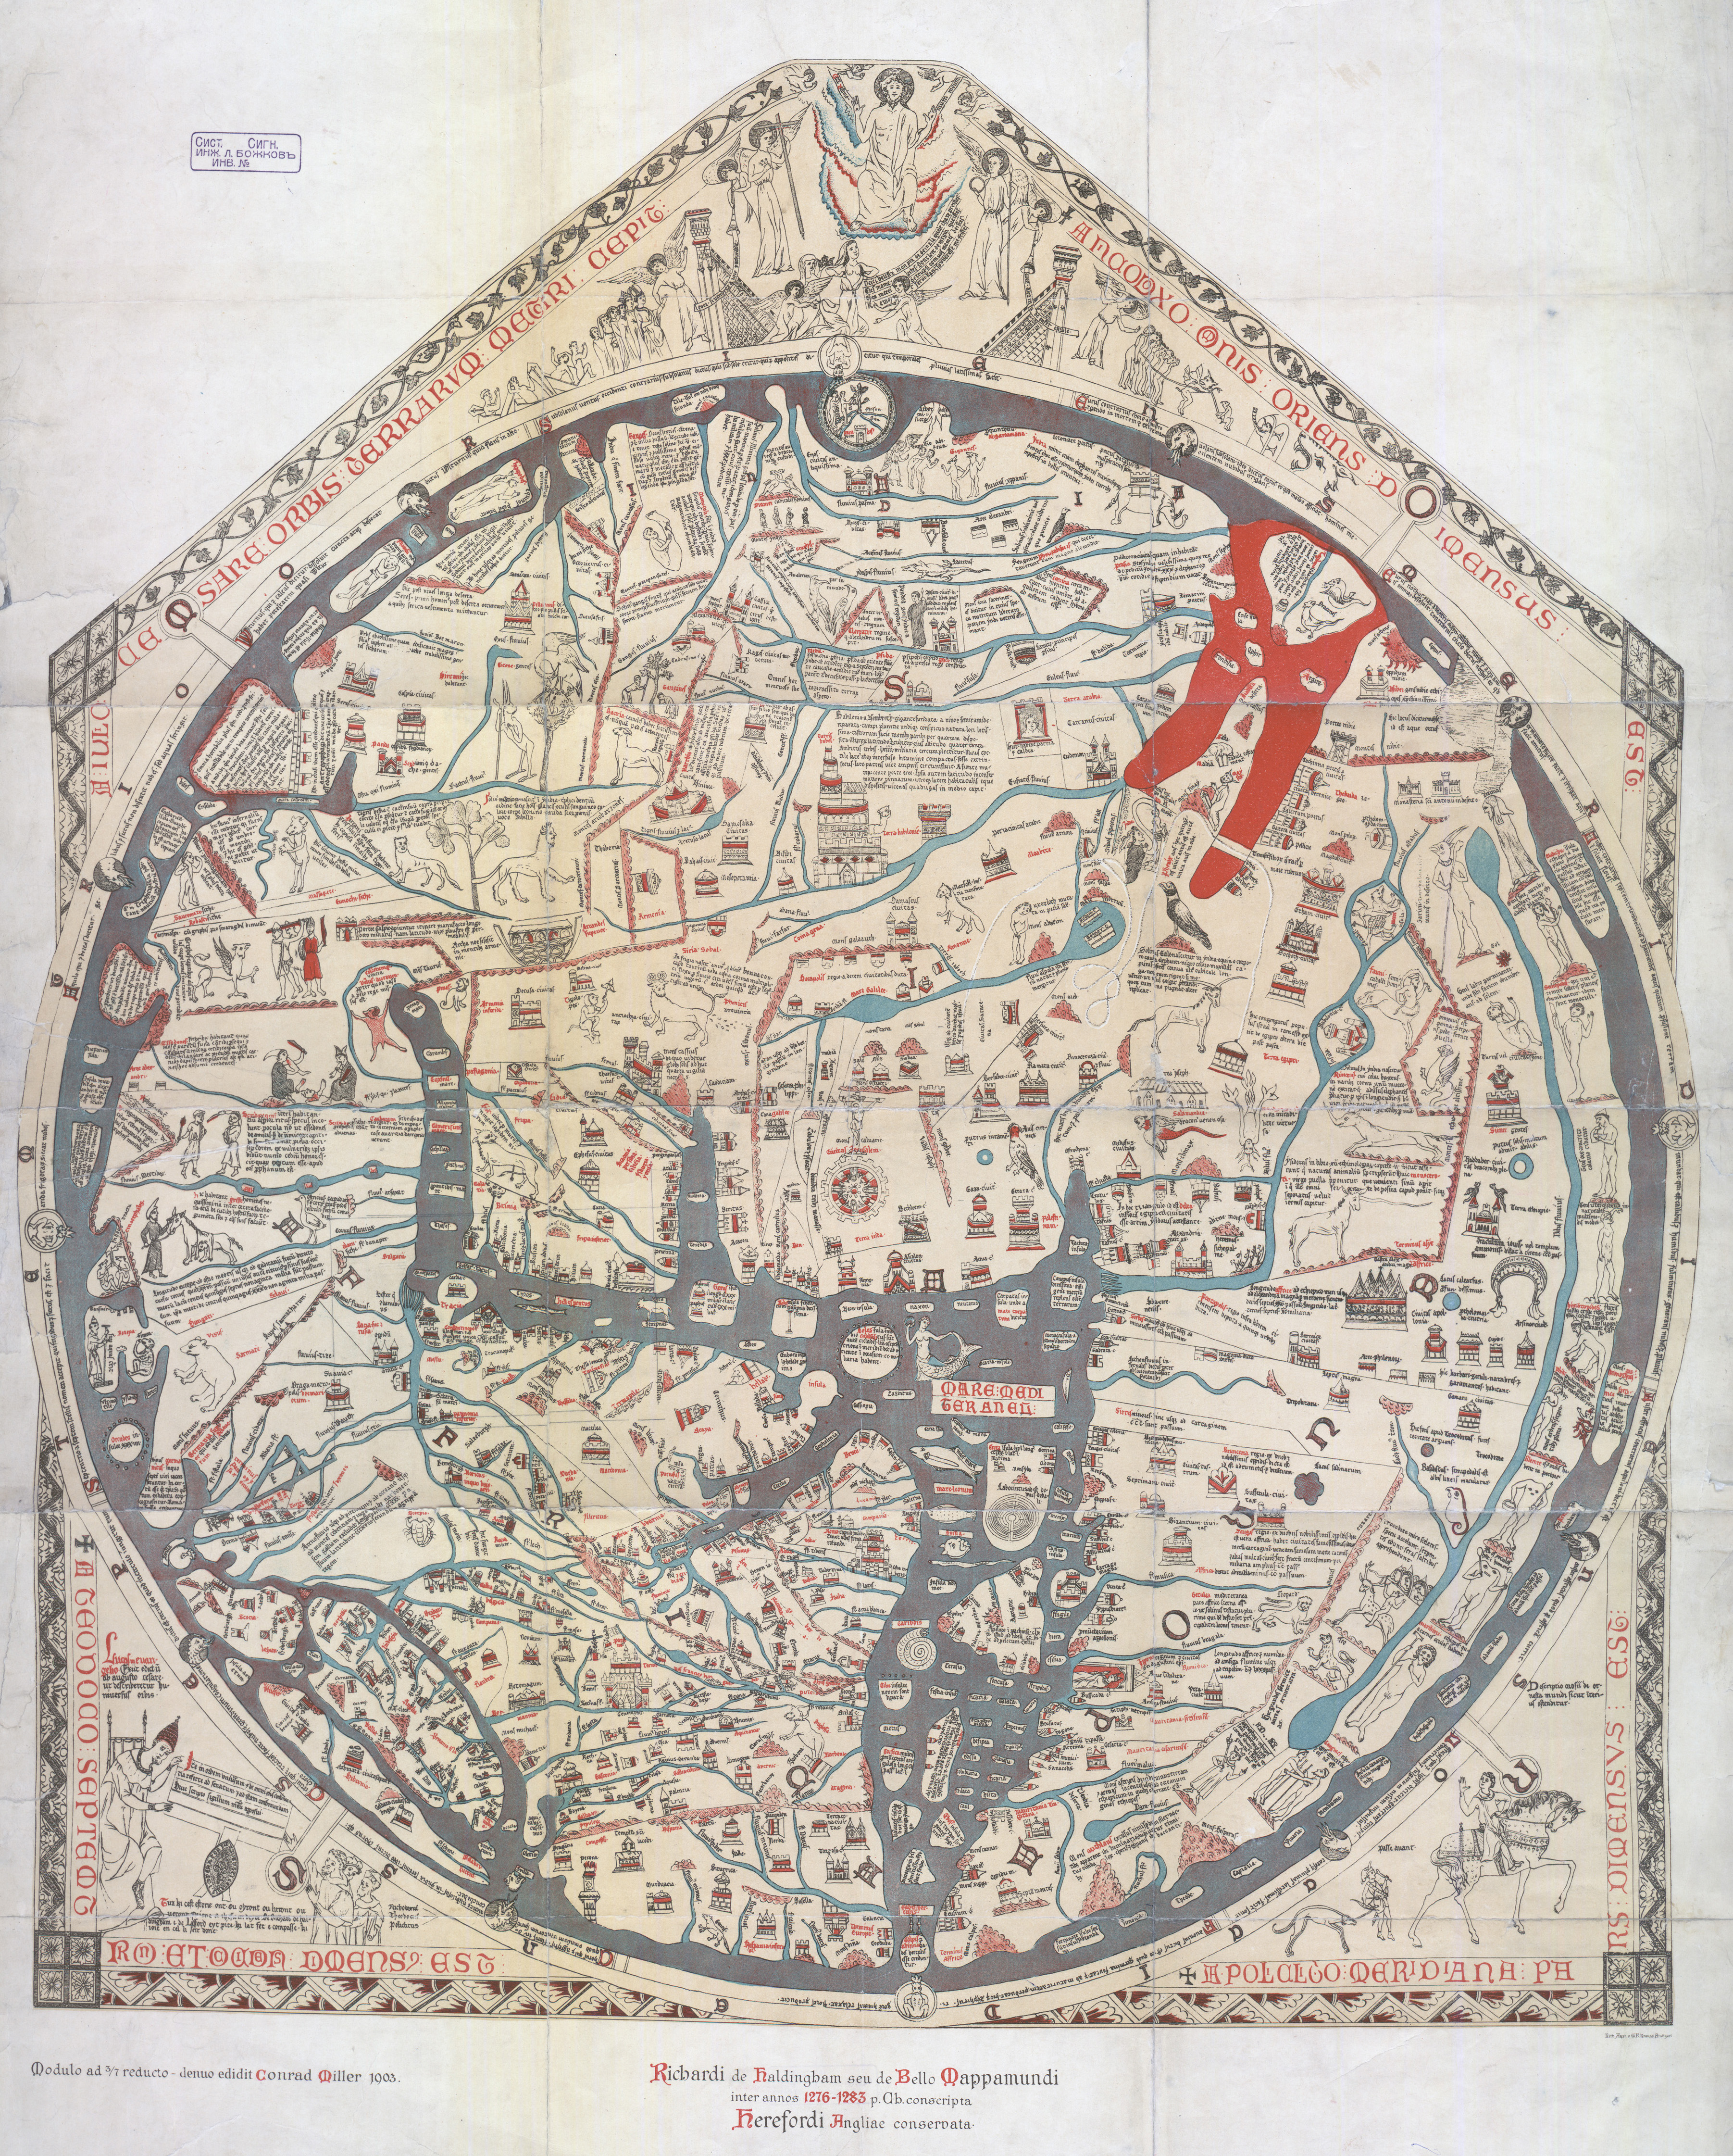 Maps for makers representing earth through time europeana pro typical of many medieval maps the center of the world is presented as the holy city of jerusalem earth is depicted as a disk and as land surrounded by gumiabroncs Choice Image